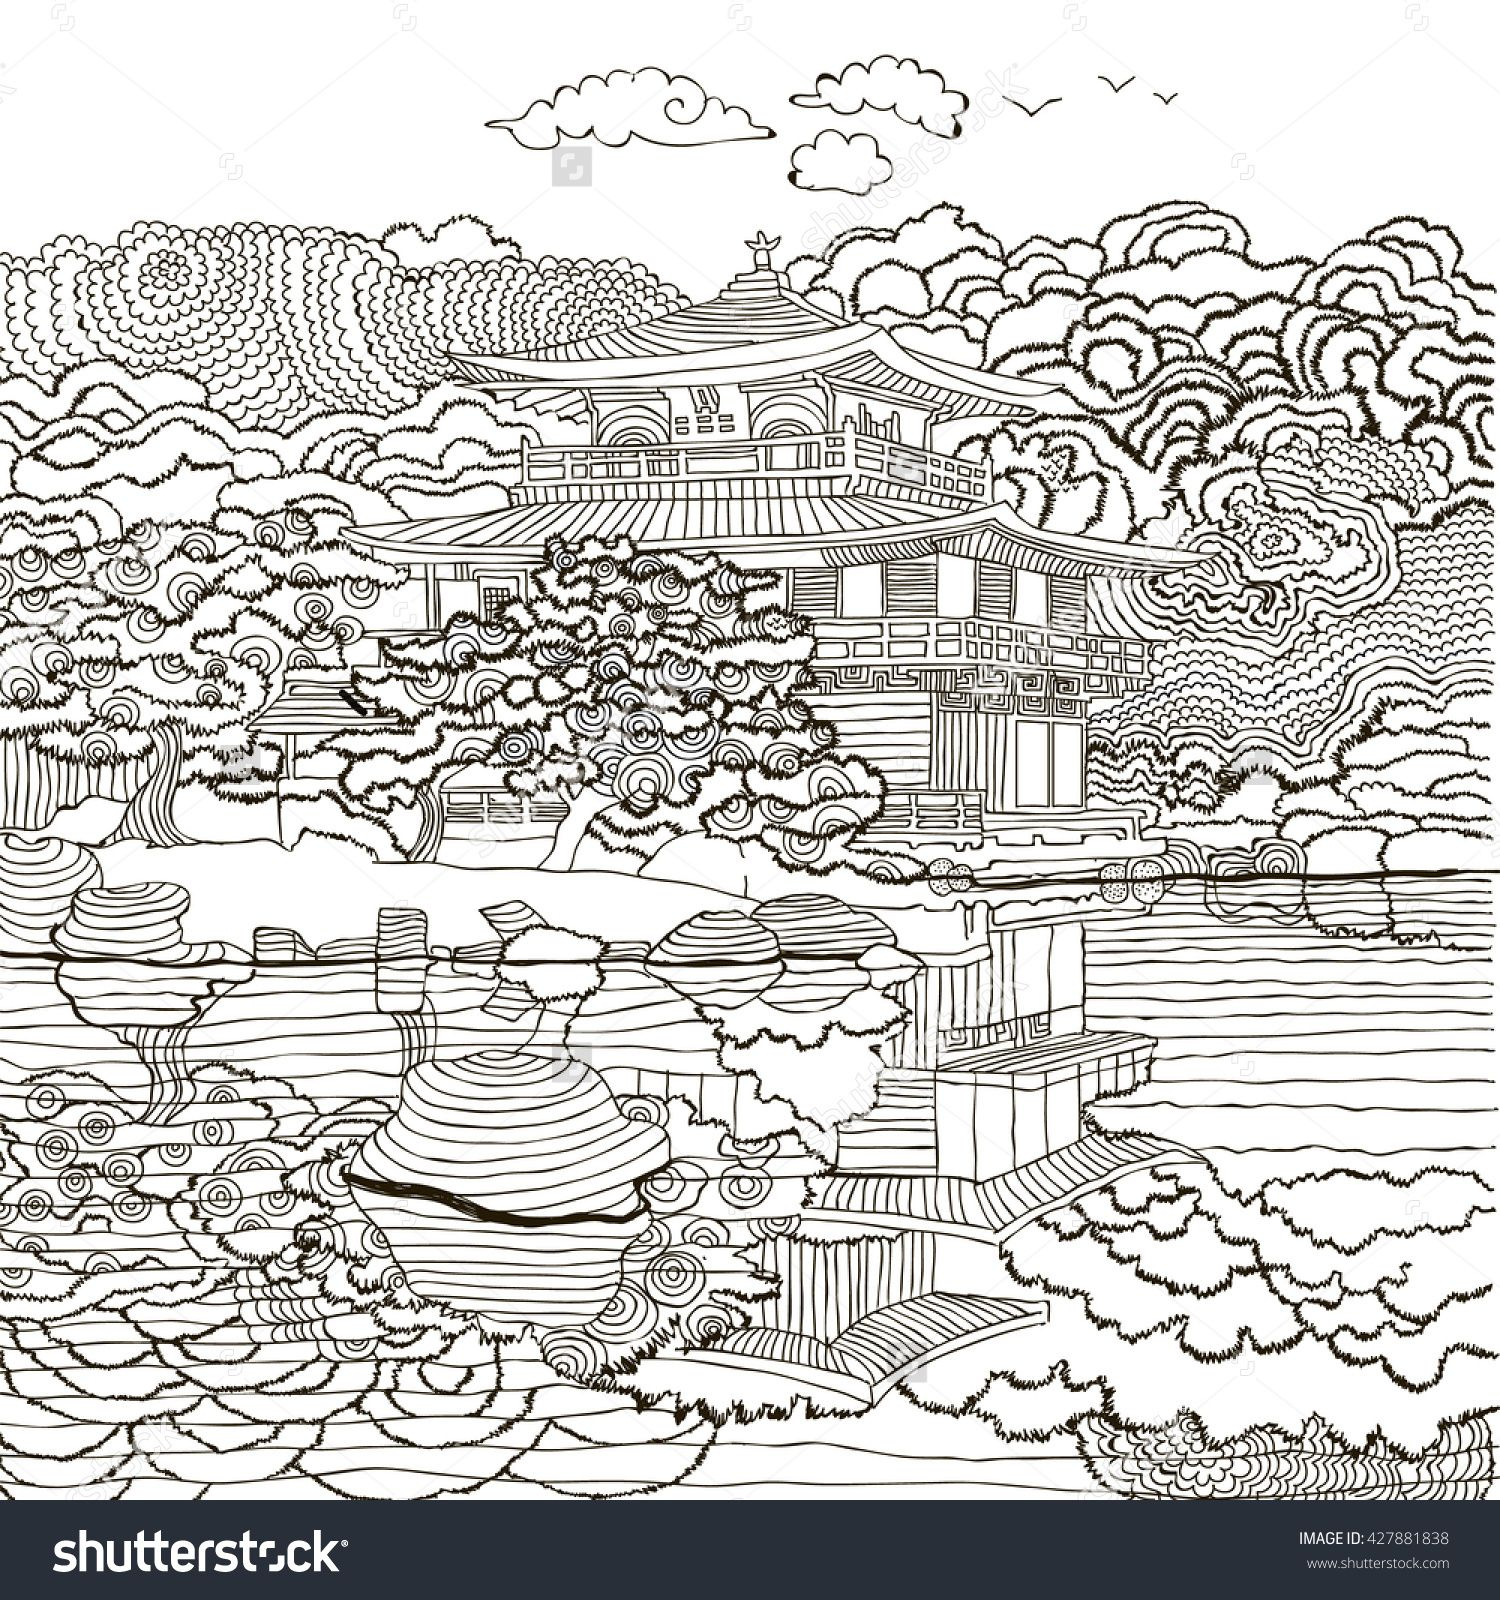 Beautiful Japanese Landscape With House And Clouds Coloring Pages Japan East